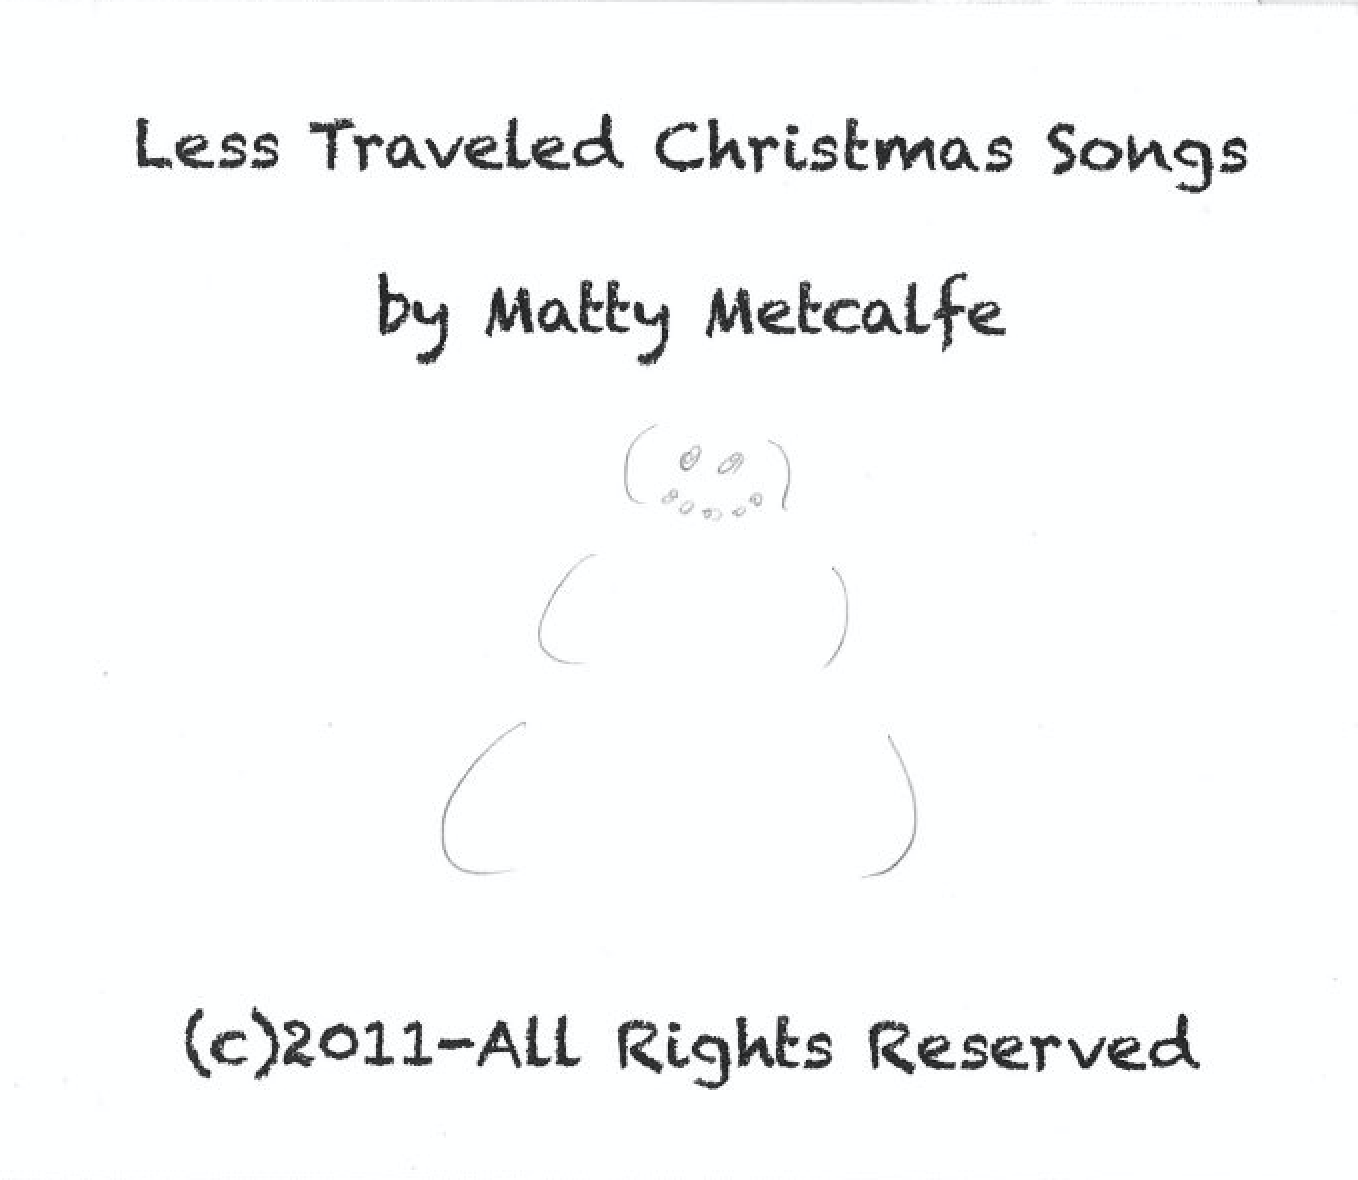 Less Traveled Christmas Songs